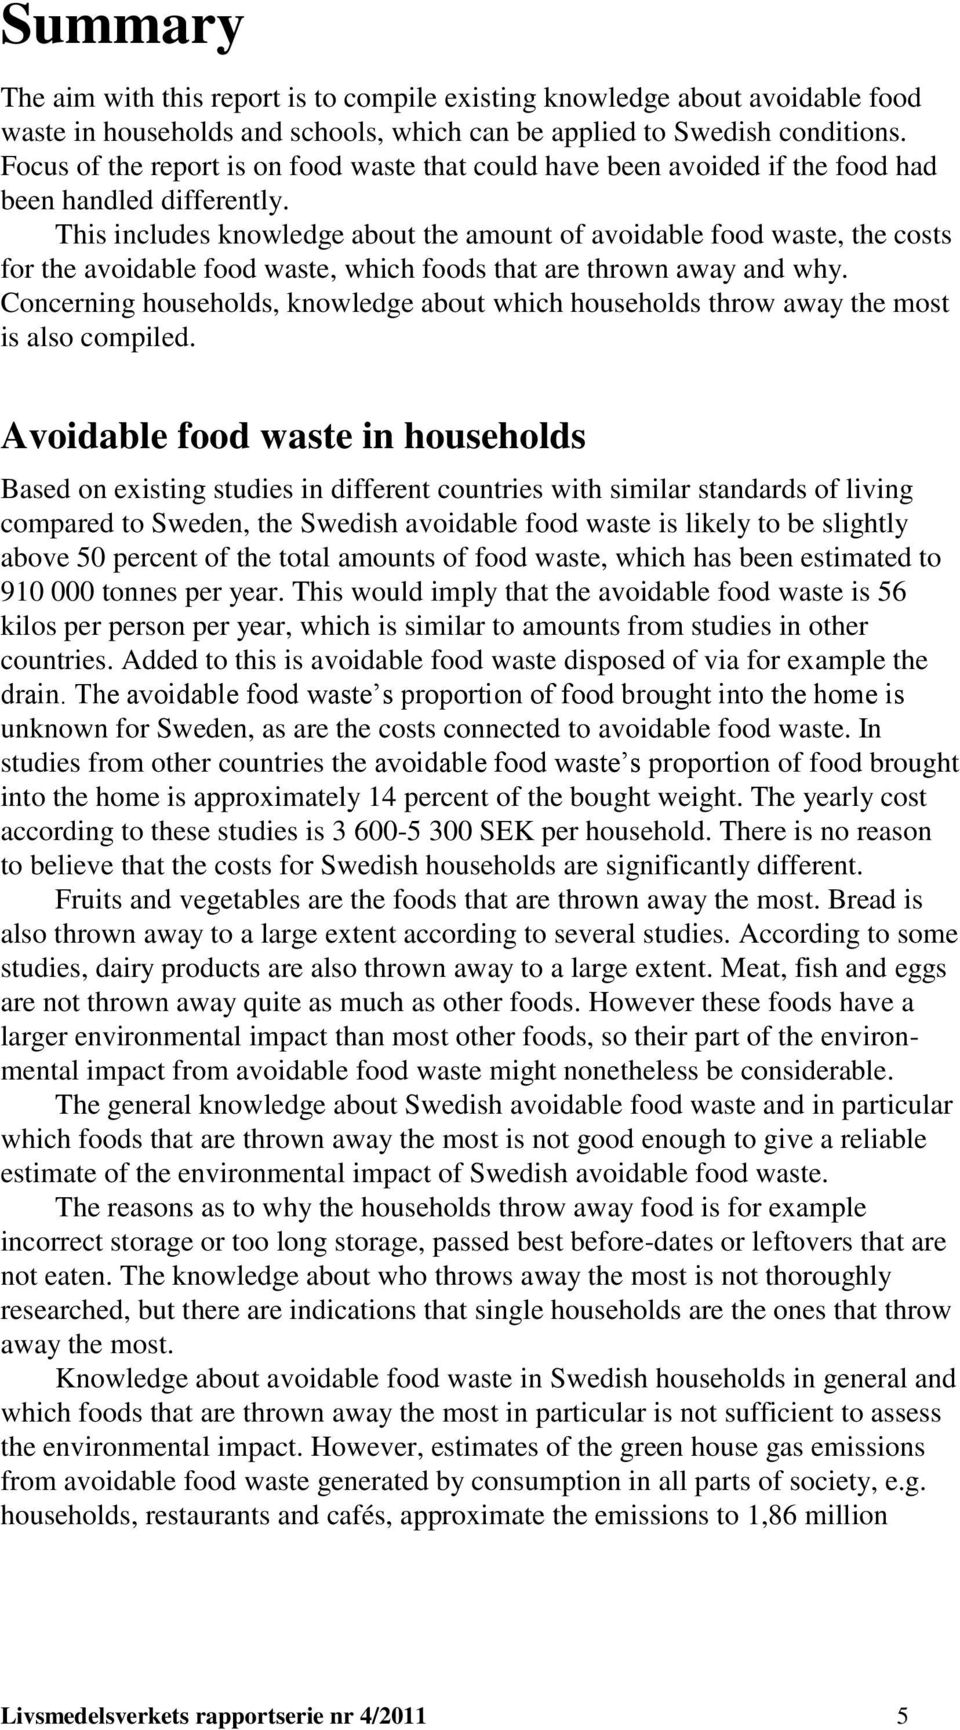 This includes knowledge about the amount of avoidable food waste, the costs for the avoidable food waste, which foods that are thrown away and why.